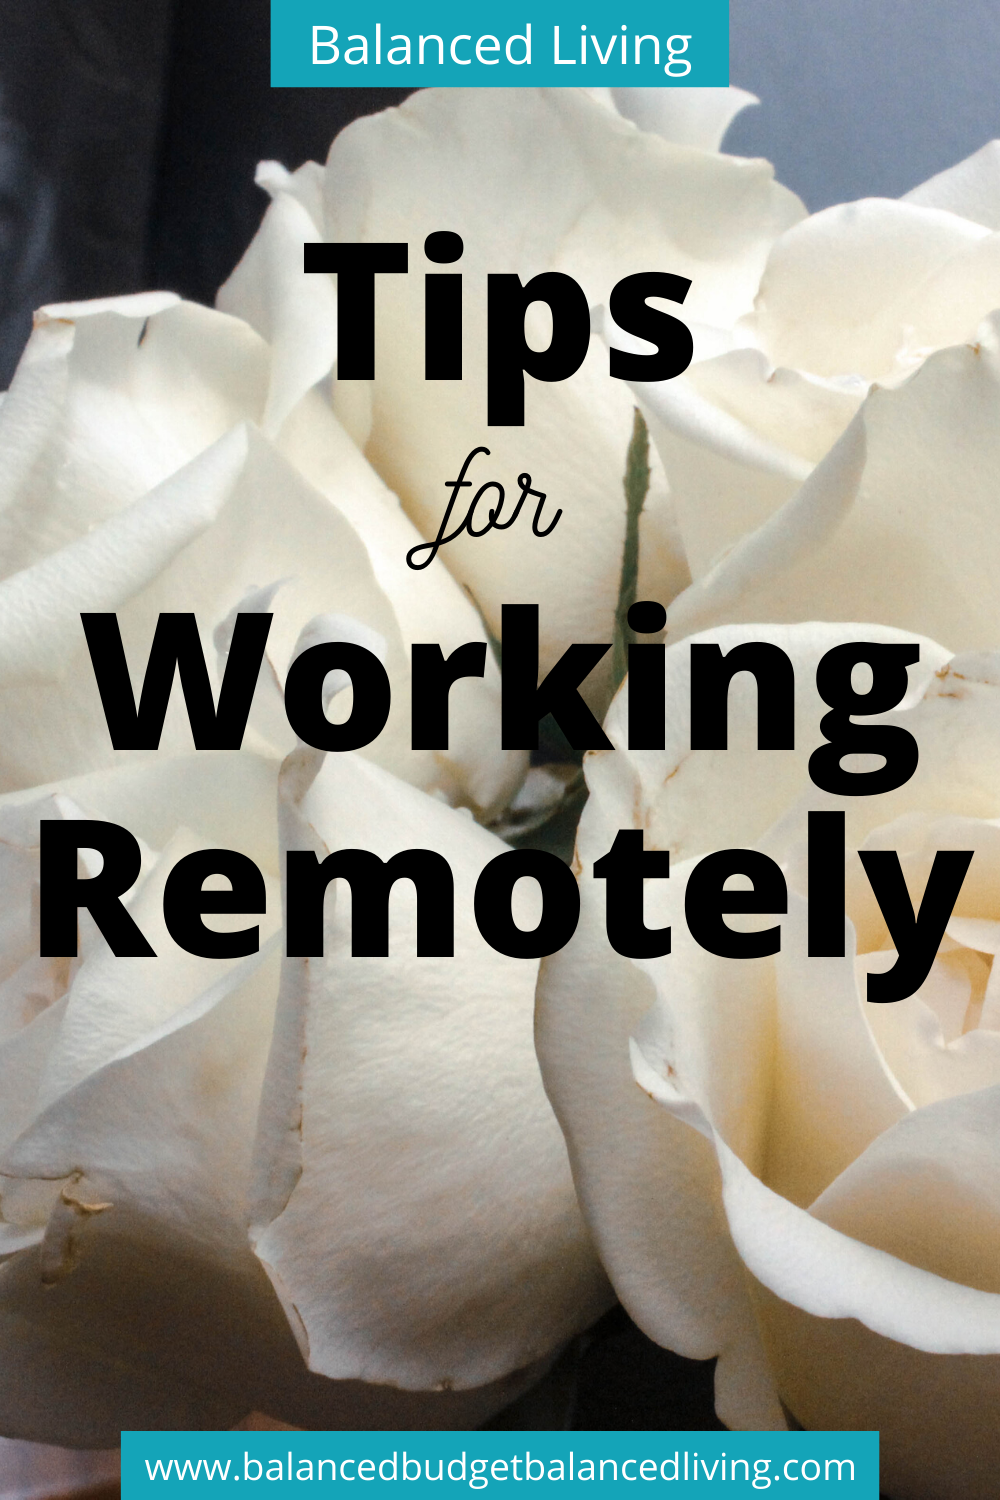 Tips For Working Remotely Remote Work Balanced Living Break Bad Habits